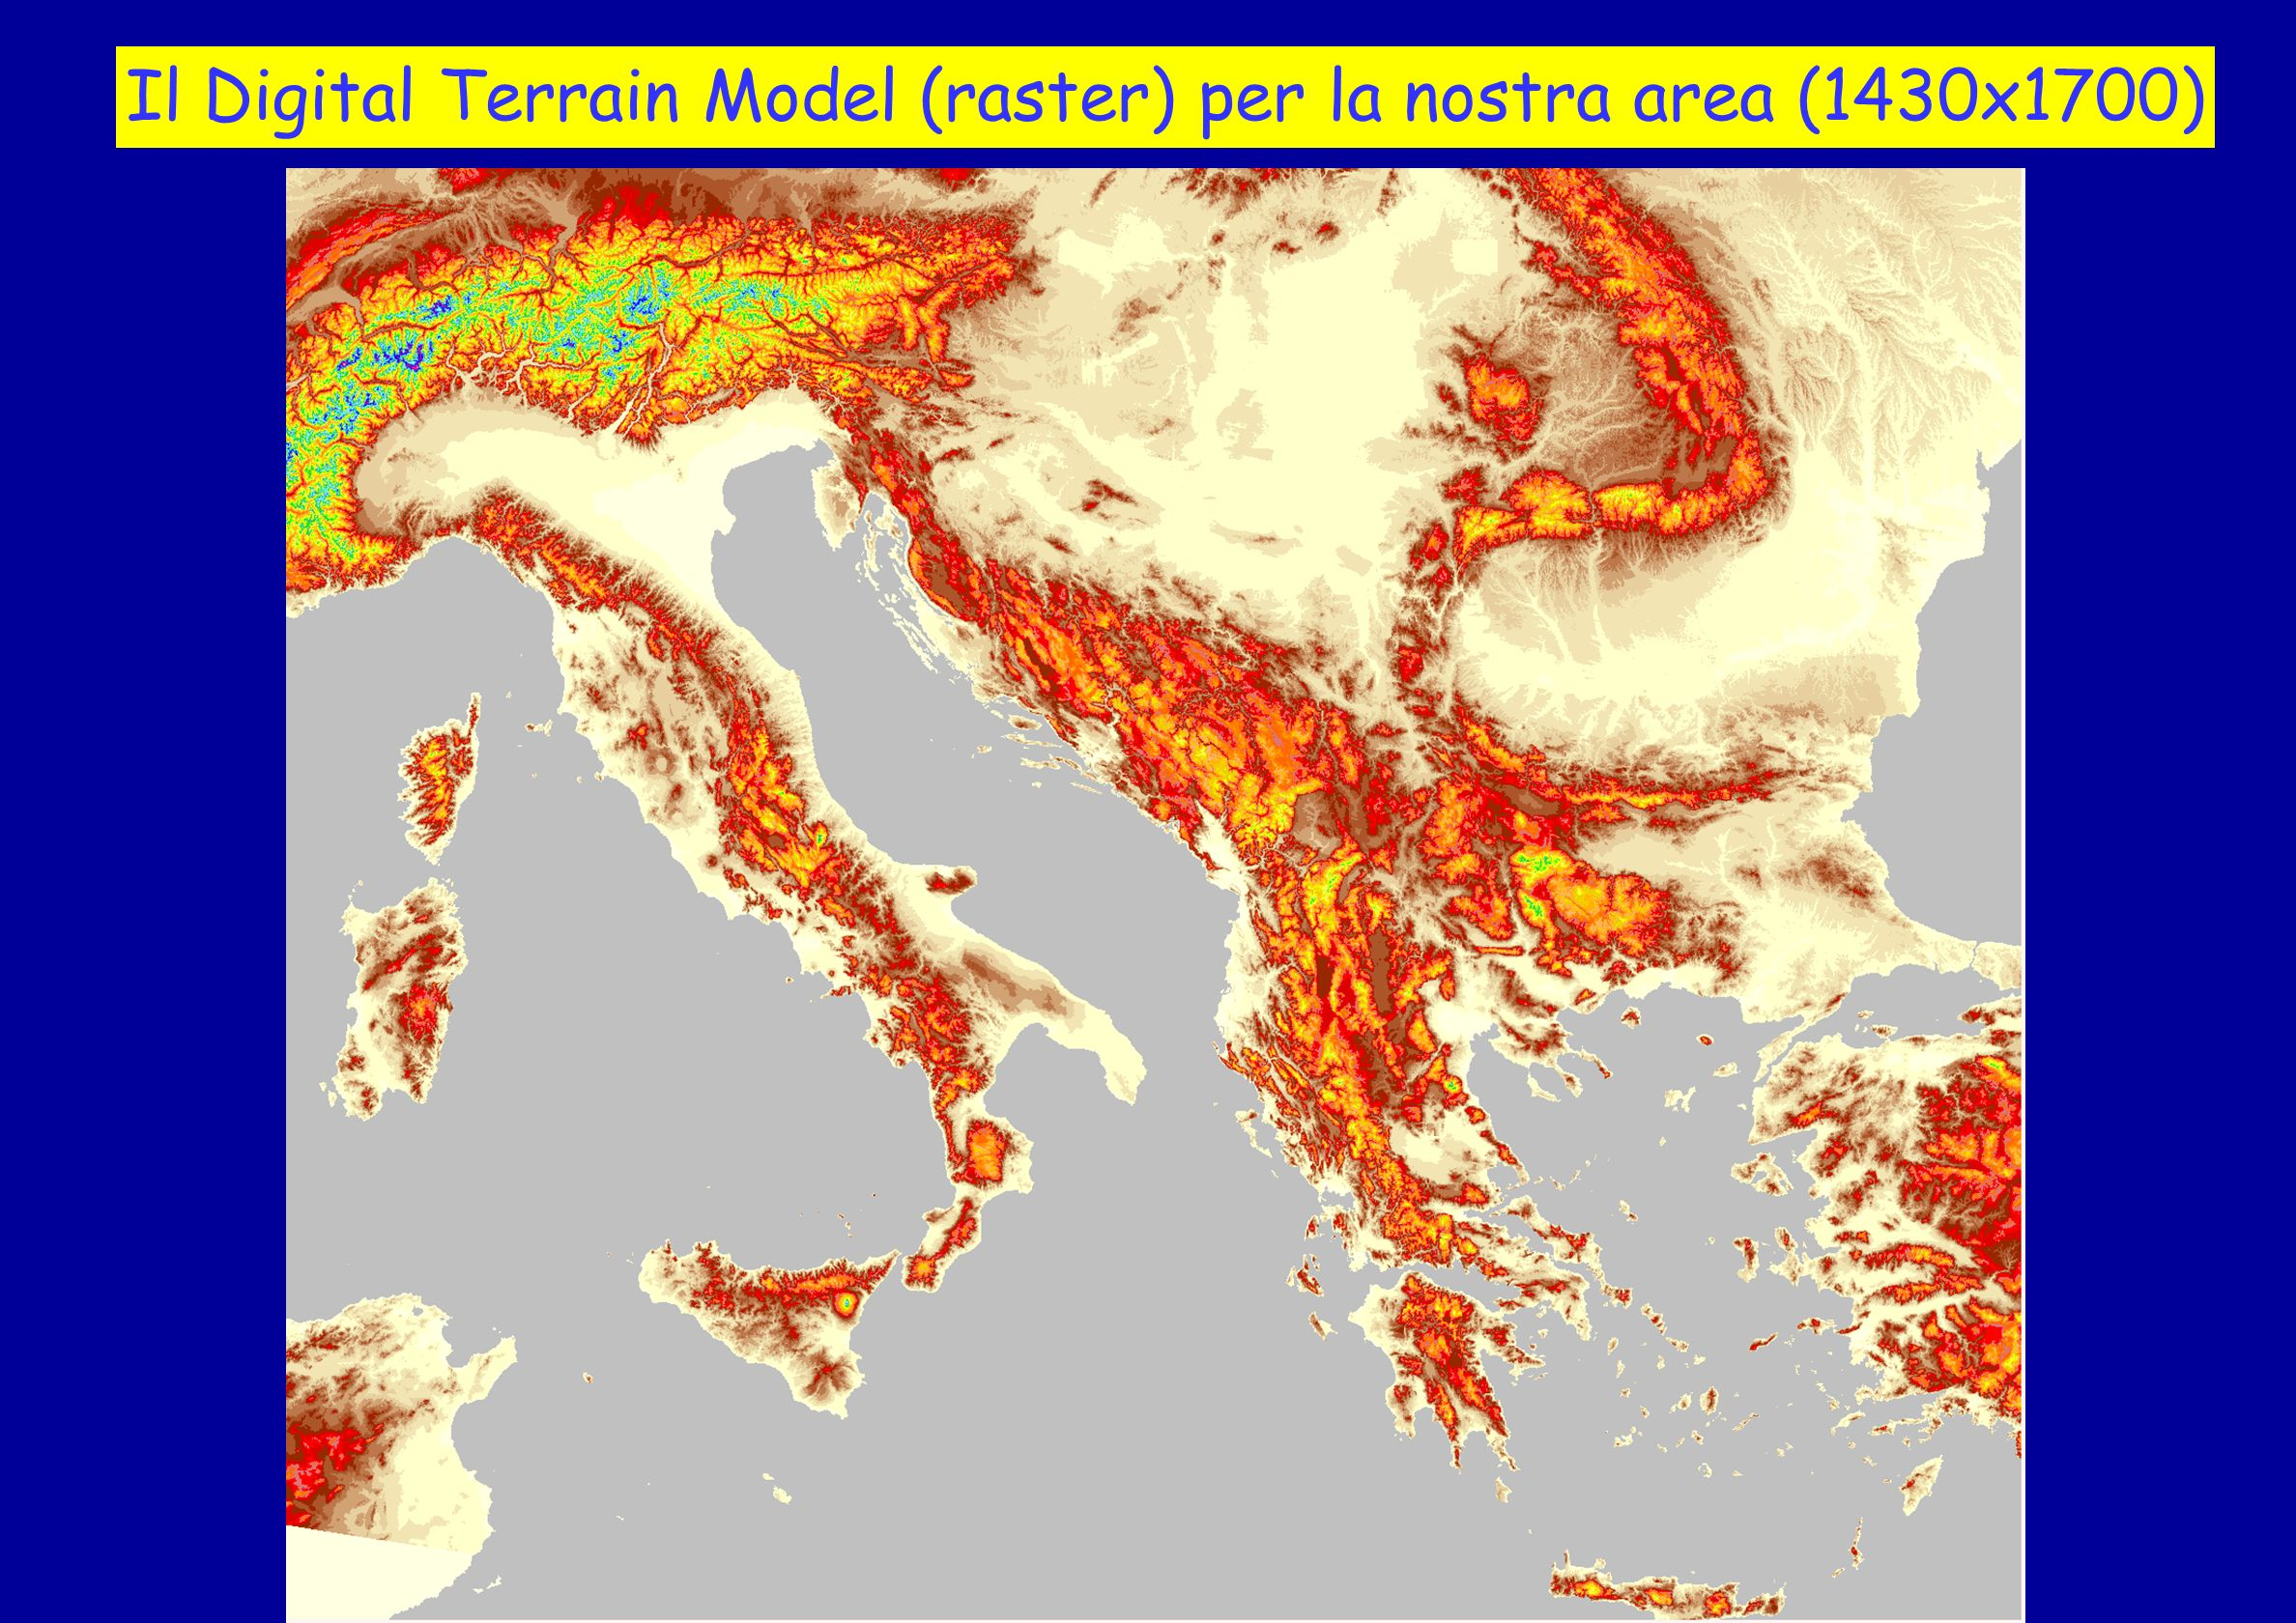 Il Digital Terrain Model (raster) per la nostra area (1430x1700)